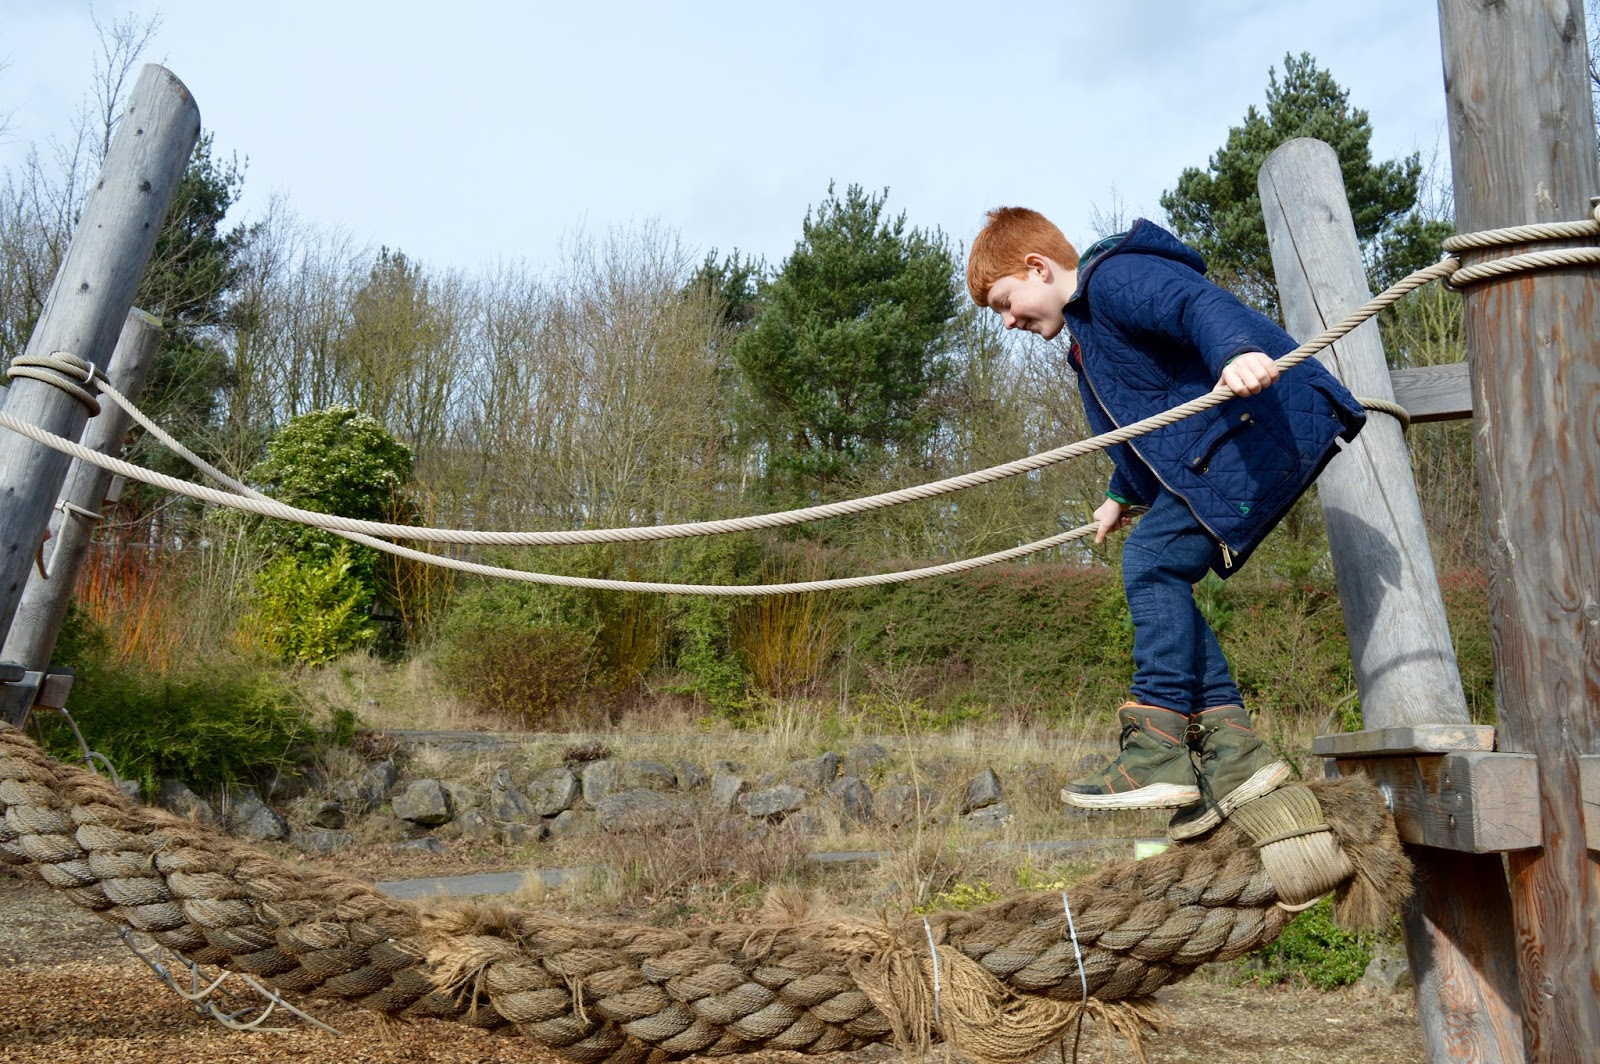 WWT Washington Wetland Centre | An Accessible North East Day Out for the Whole Family - rope bridge in park